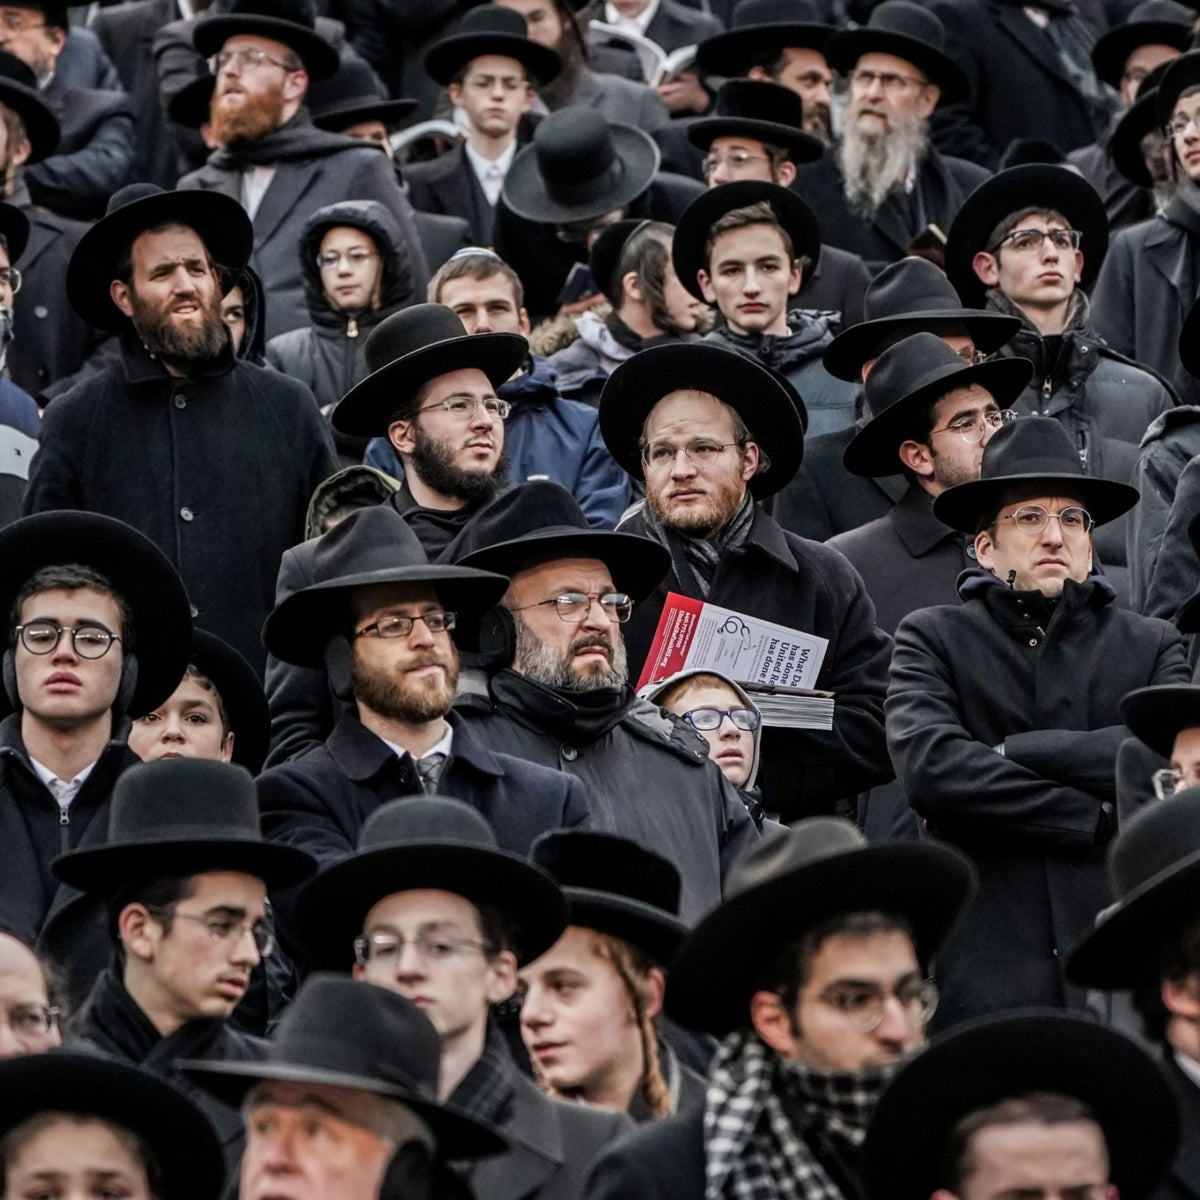 Orthodox Jews take part in Siyum HaShas, a celebration marking the completion of the Daf Yomi, a 7.5-year cycle of studying the Talmud, at the MetLife Stadium in East Rutherford, N.J., Jan. 1, 2020.